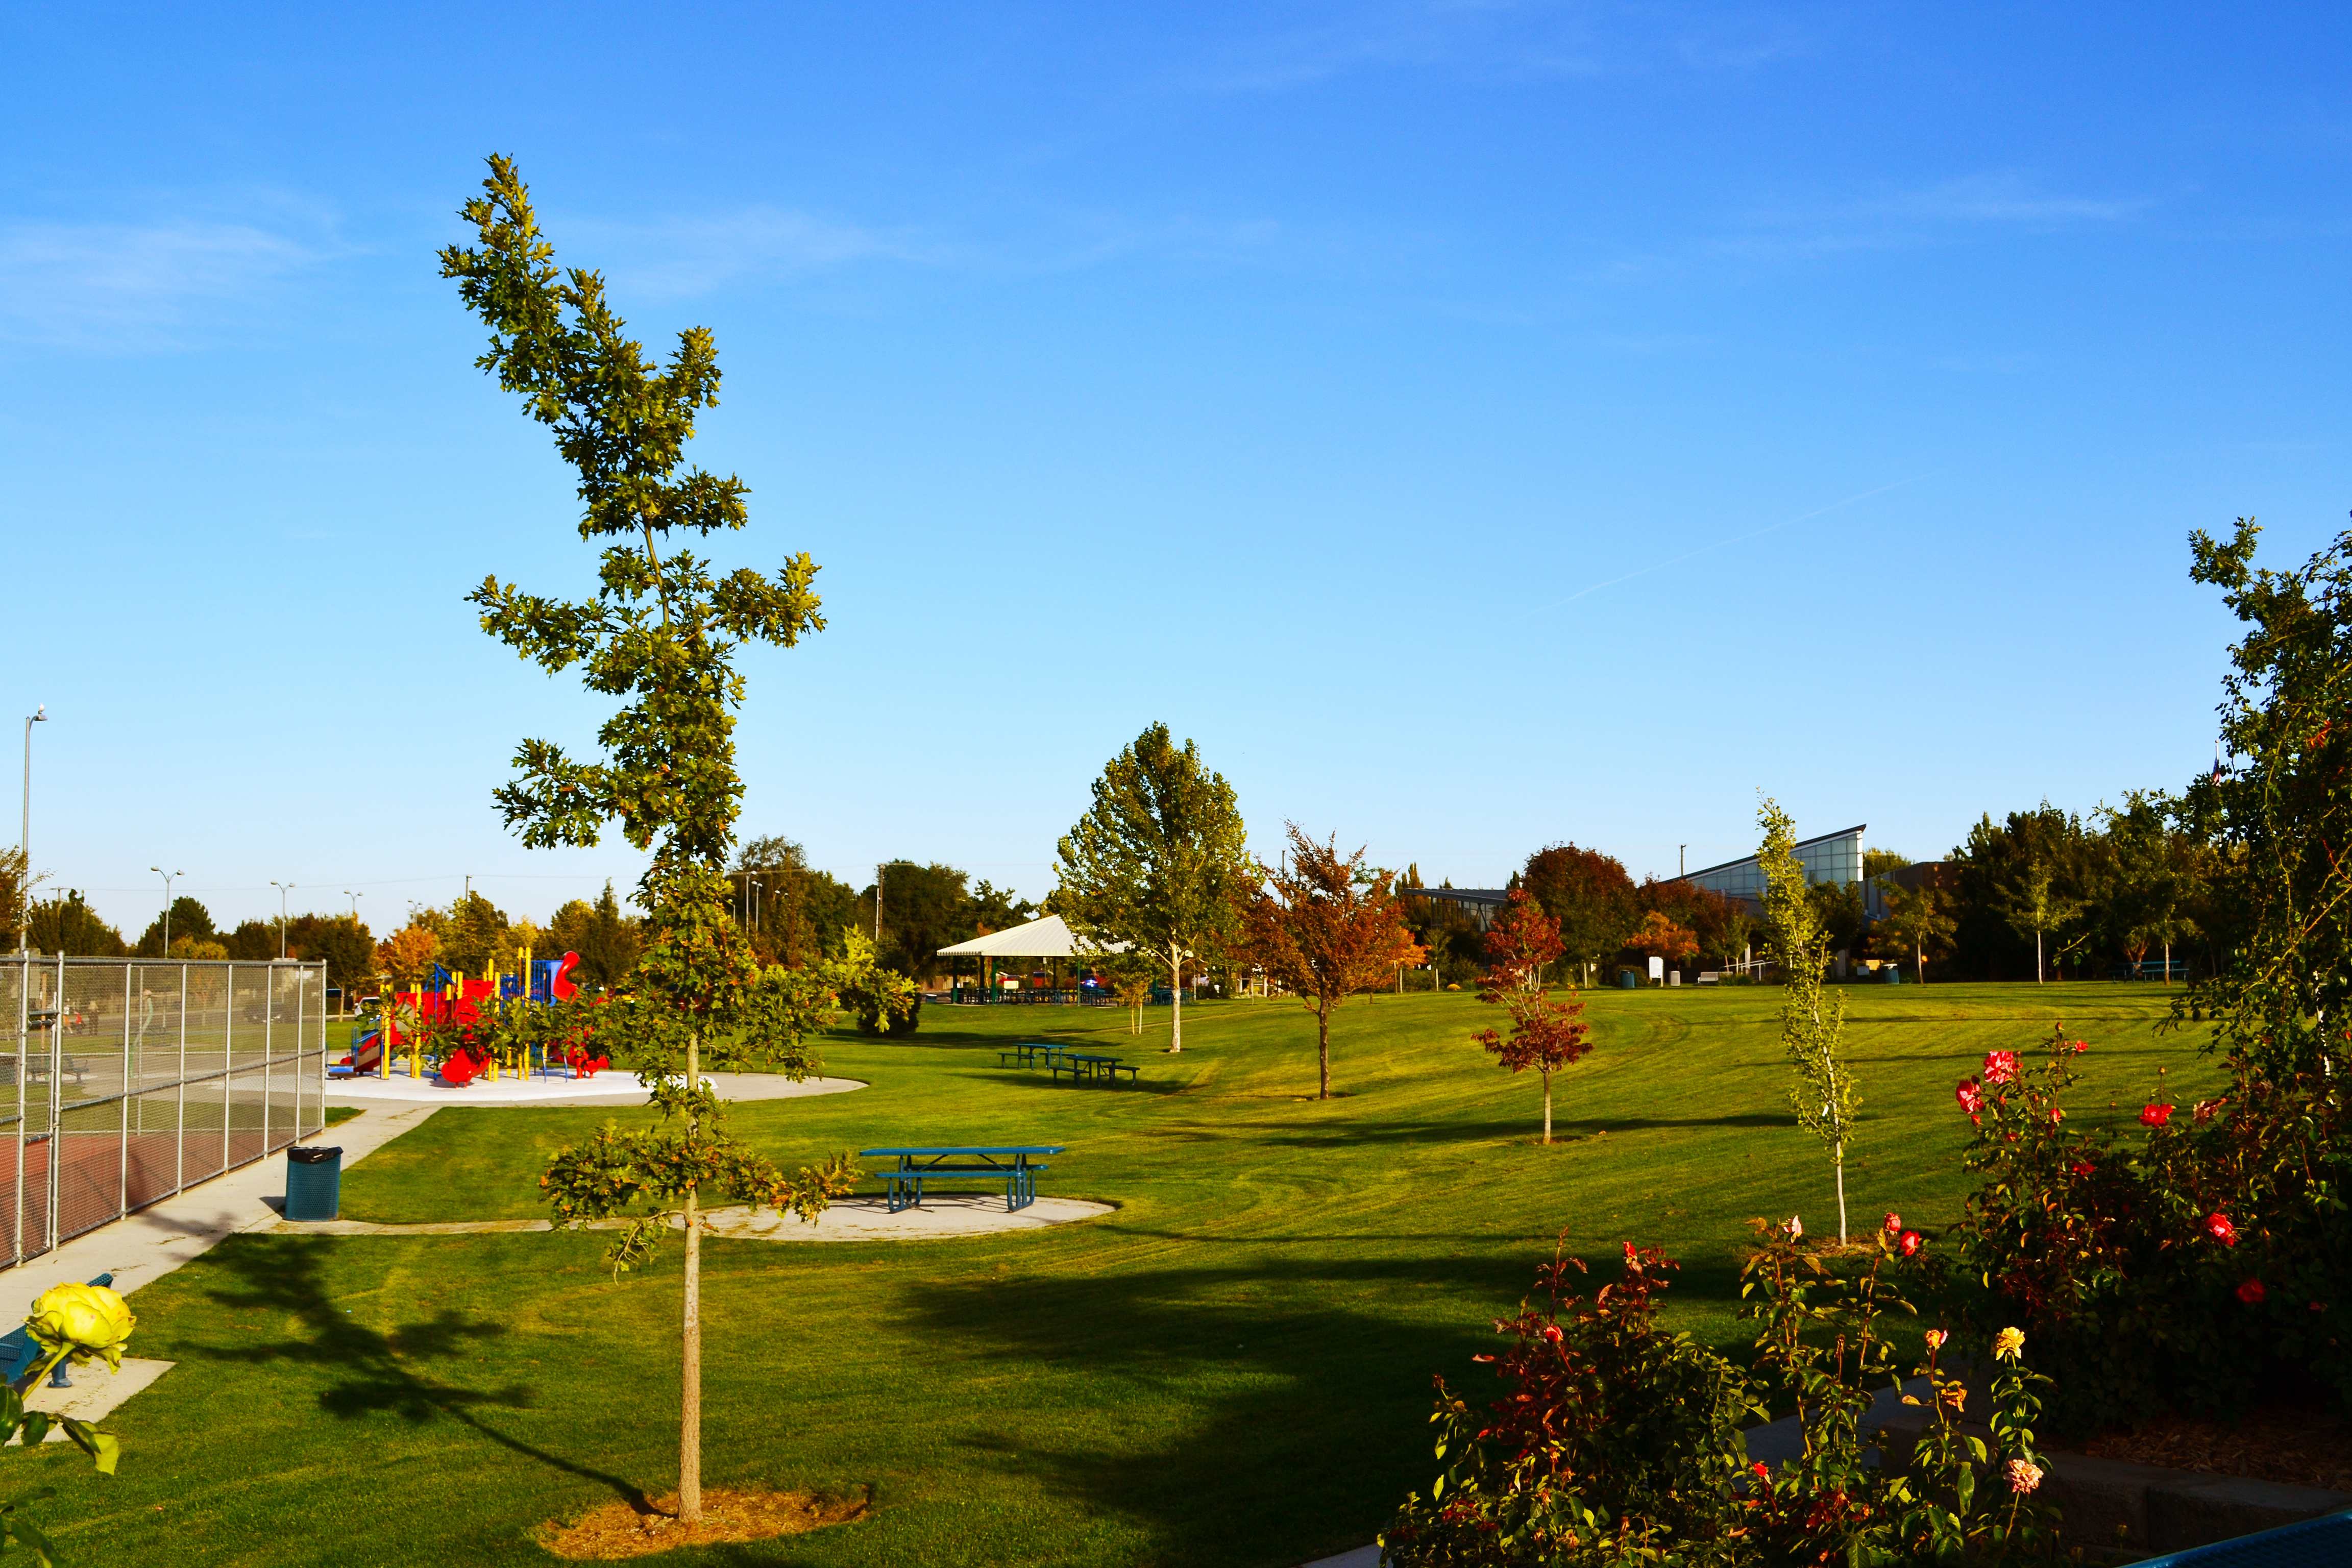 The acres of green space, such as that found at Highland Grange Park, is just one reason first-time homebuyers flock to Kennewick, Washington